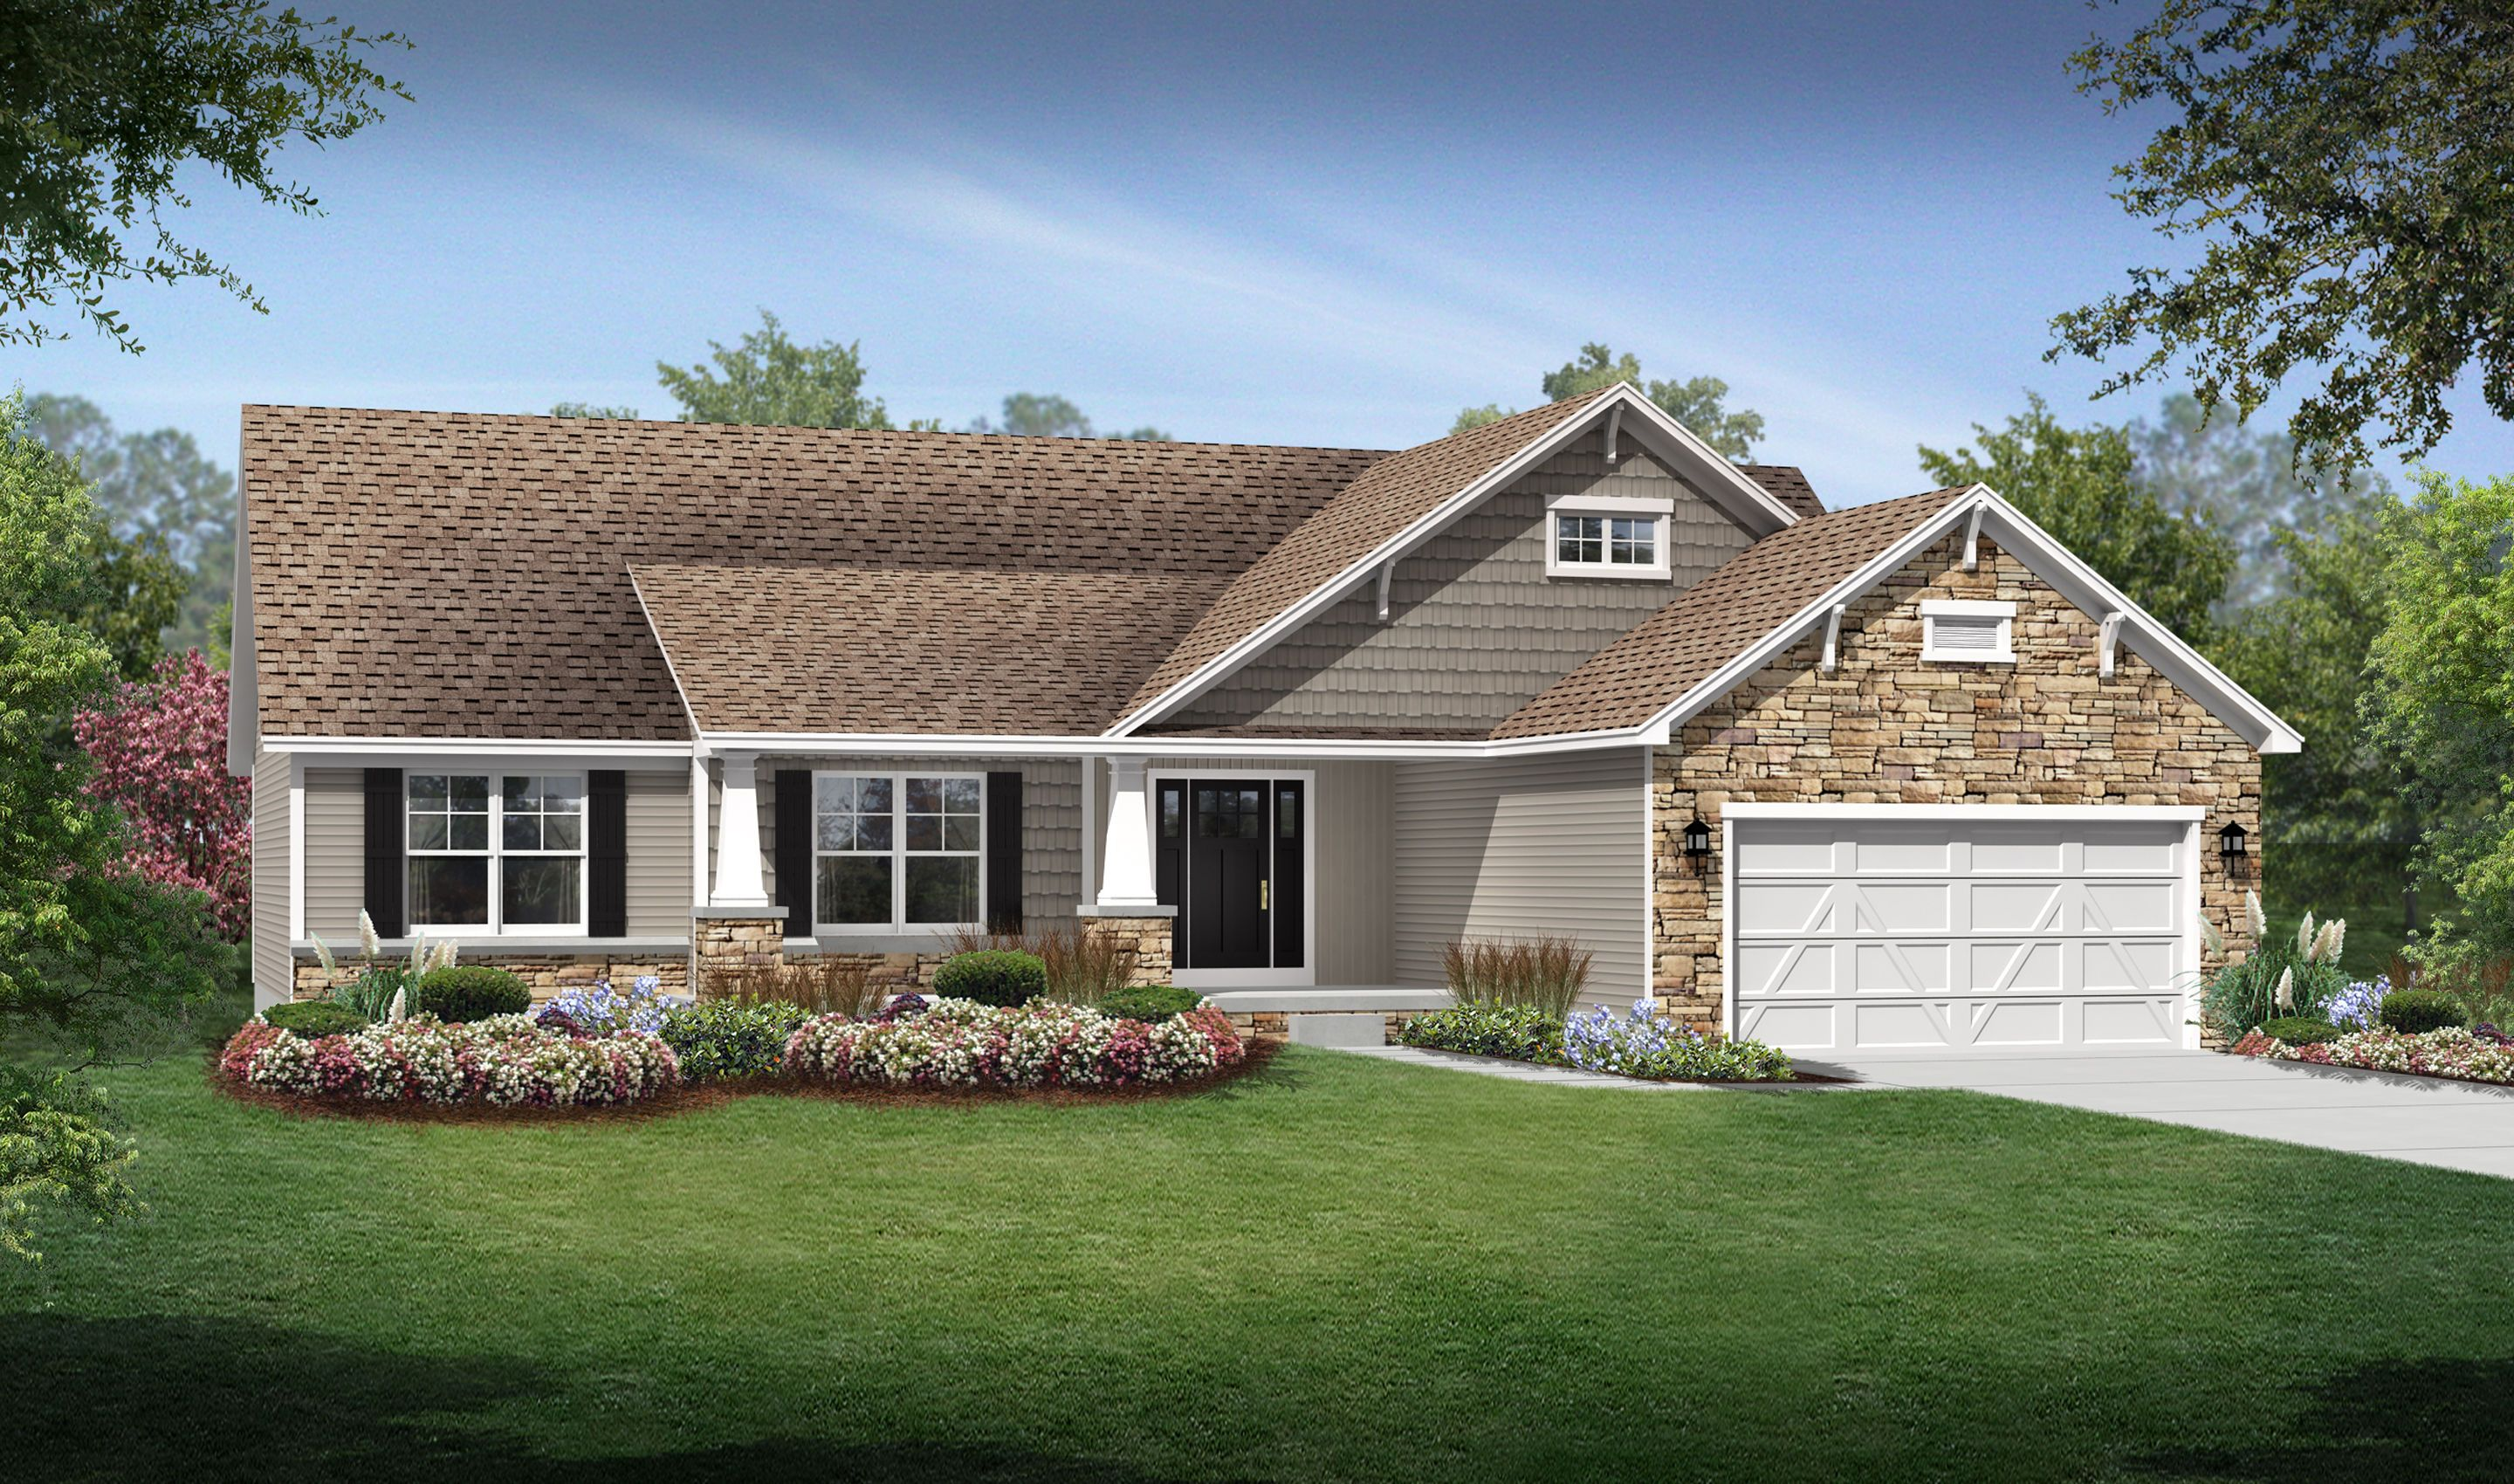 K Hovnanian Home Designs Part - 43: House · Concord By K Hovnanian Homes Love This Ranch Design